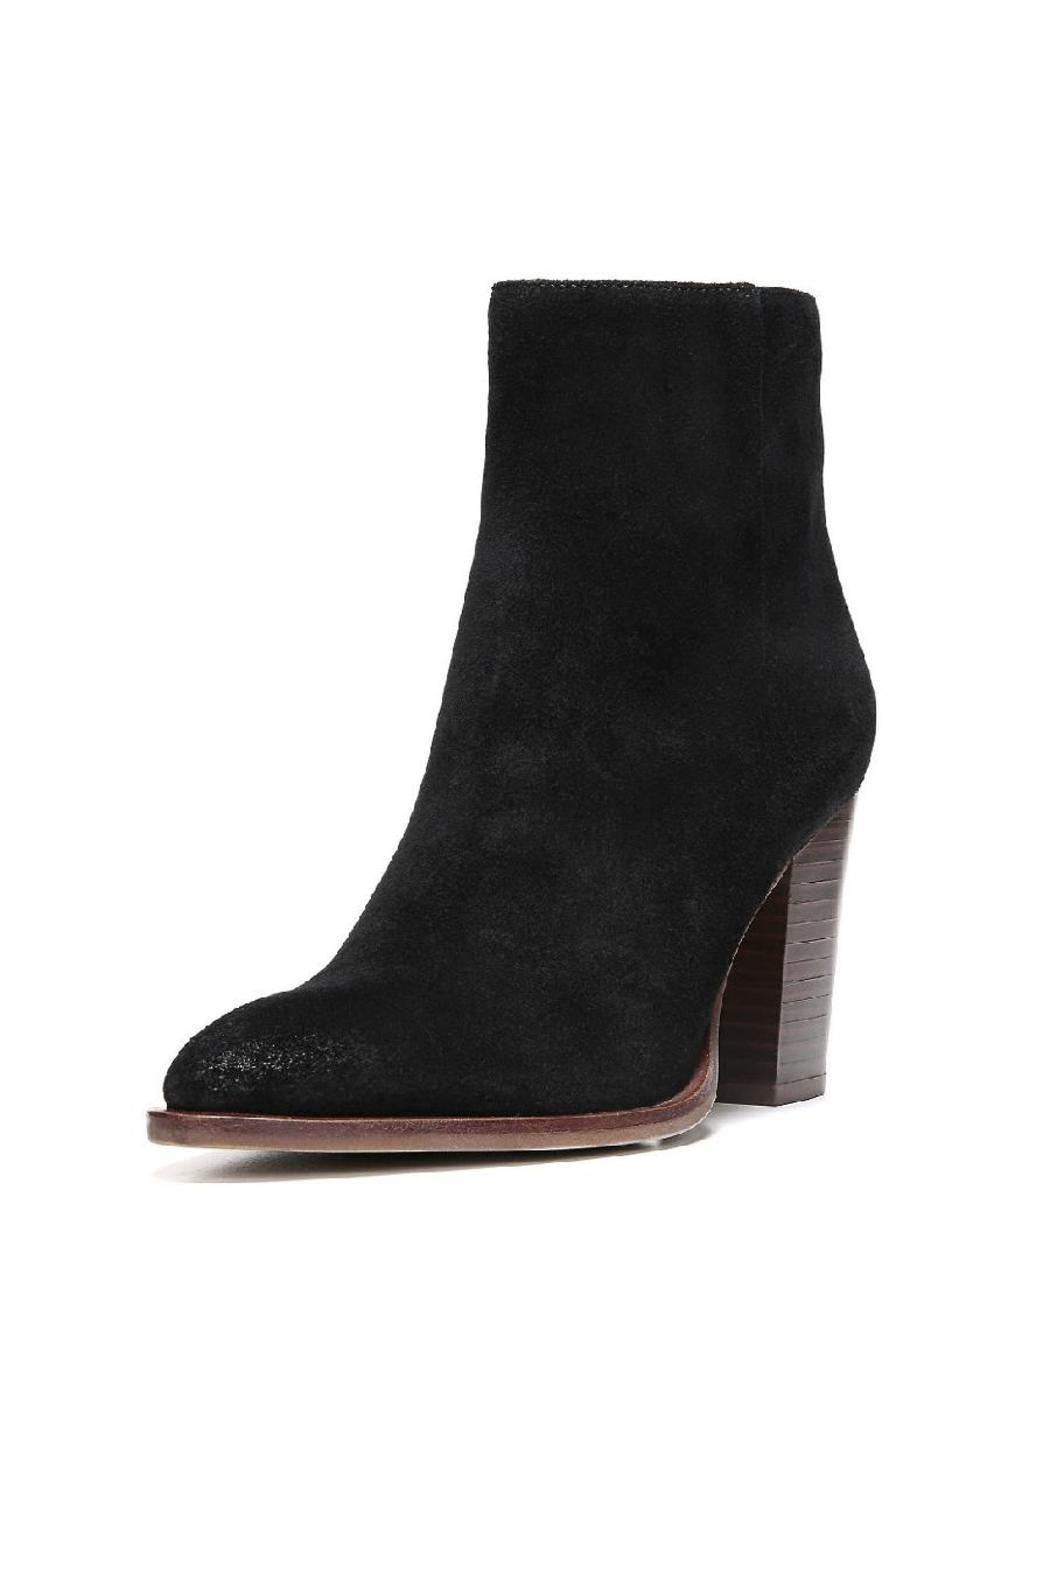 e7b8cf010b1d2 Sam Edelman Blake Ankle Bootie from Hudson Valley by Bfree — Shoptiques